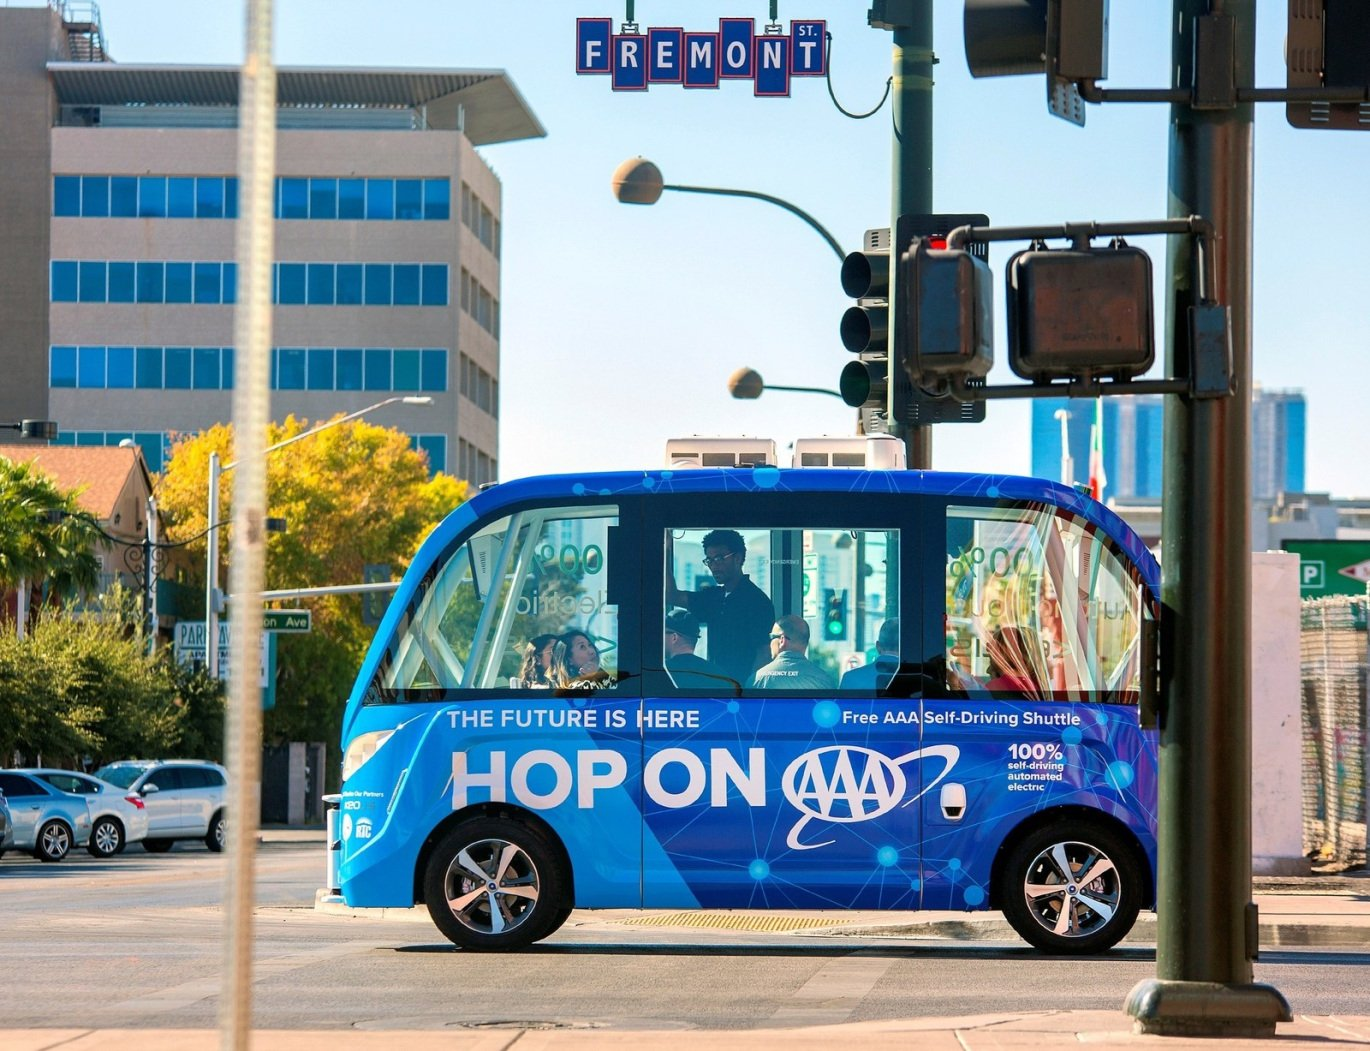 Driverless shuttle in Las Vegas gets in fender bender within an hour https://t.co/6Uwp0P9H11 https://t.co/j3bfTR6PaO